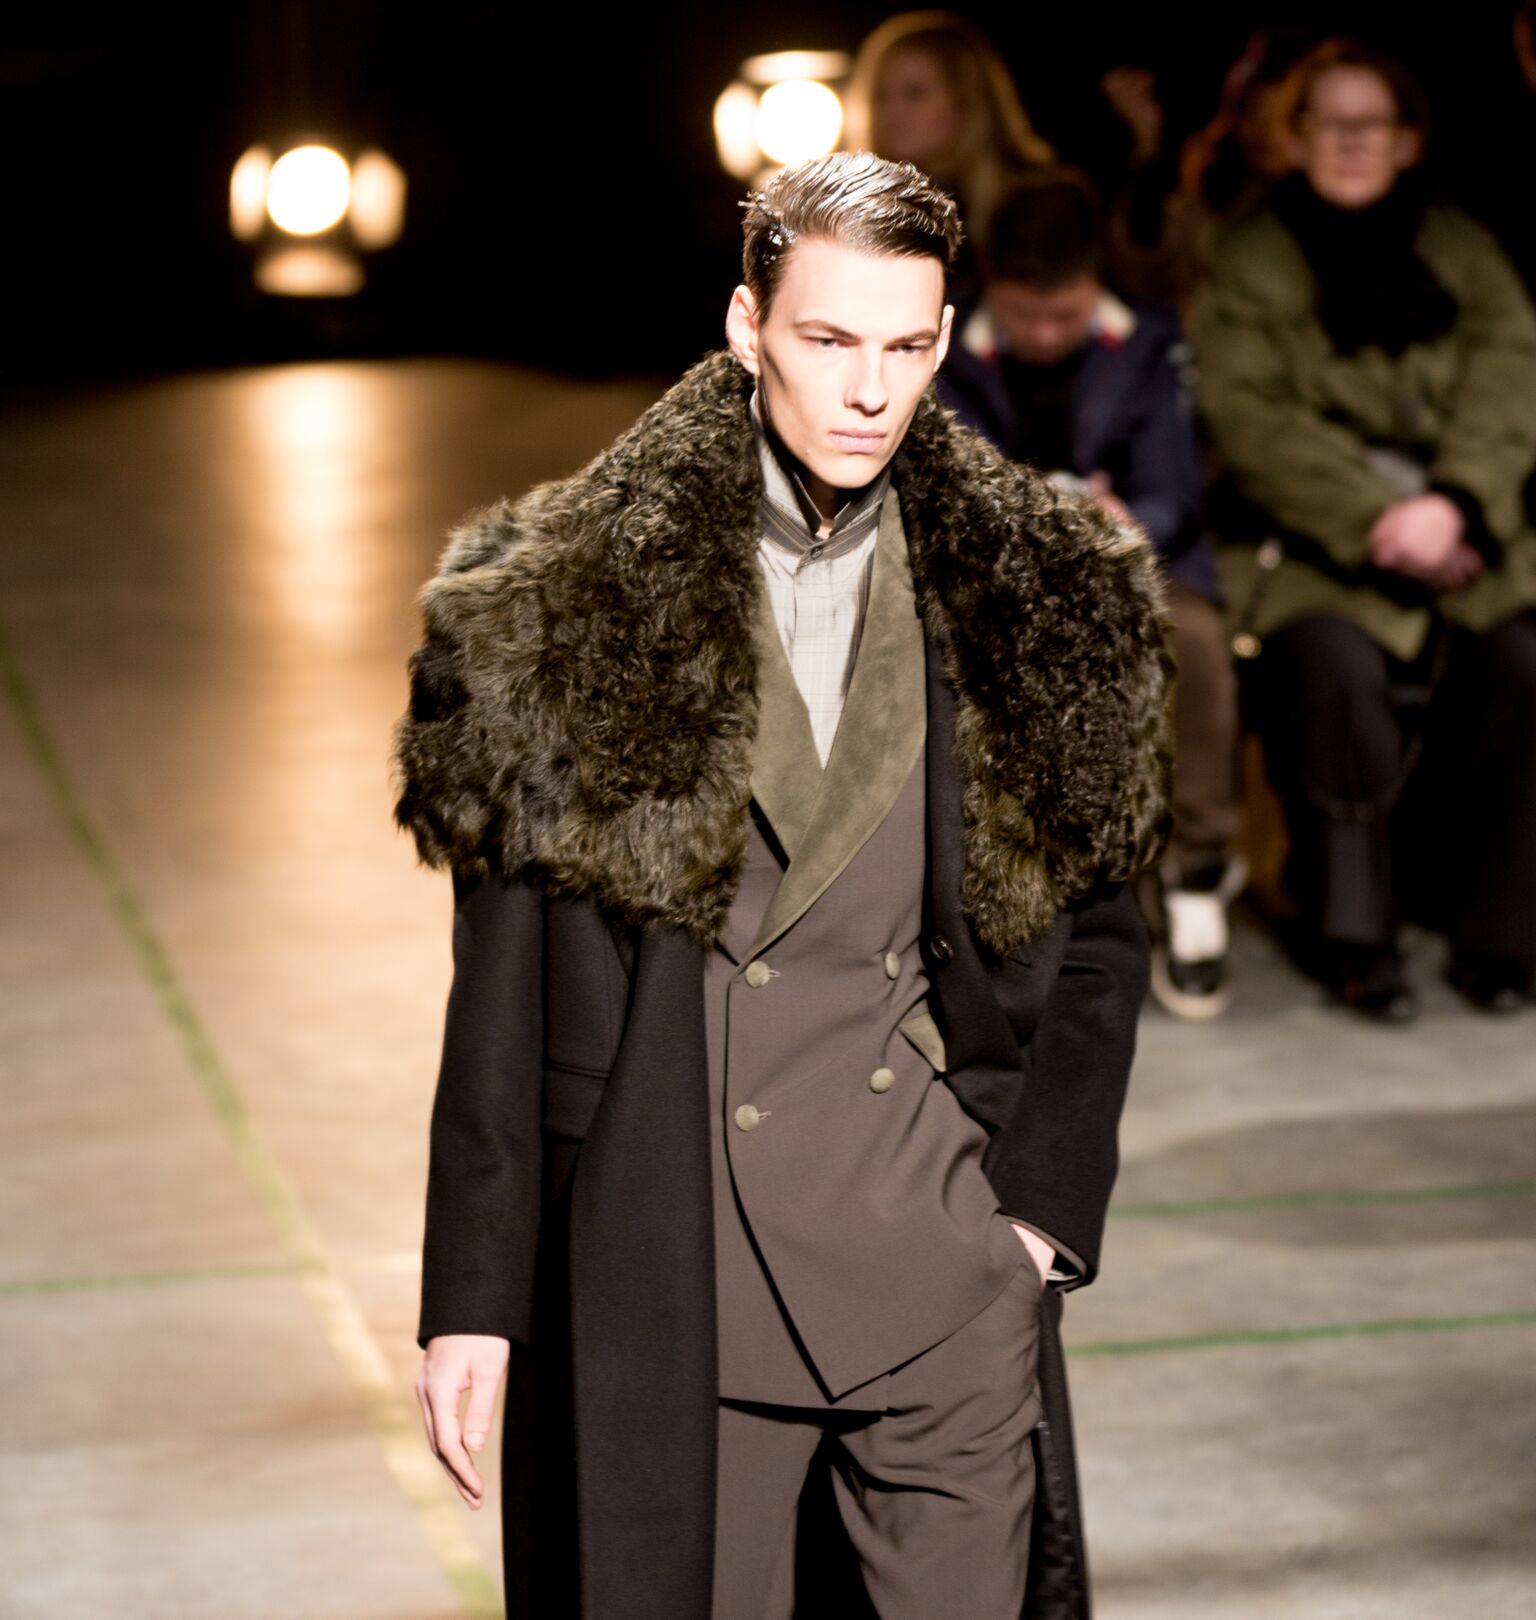 Playing with textures - silks, shearling, leather.